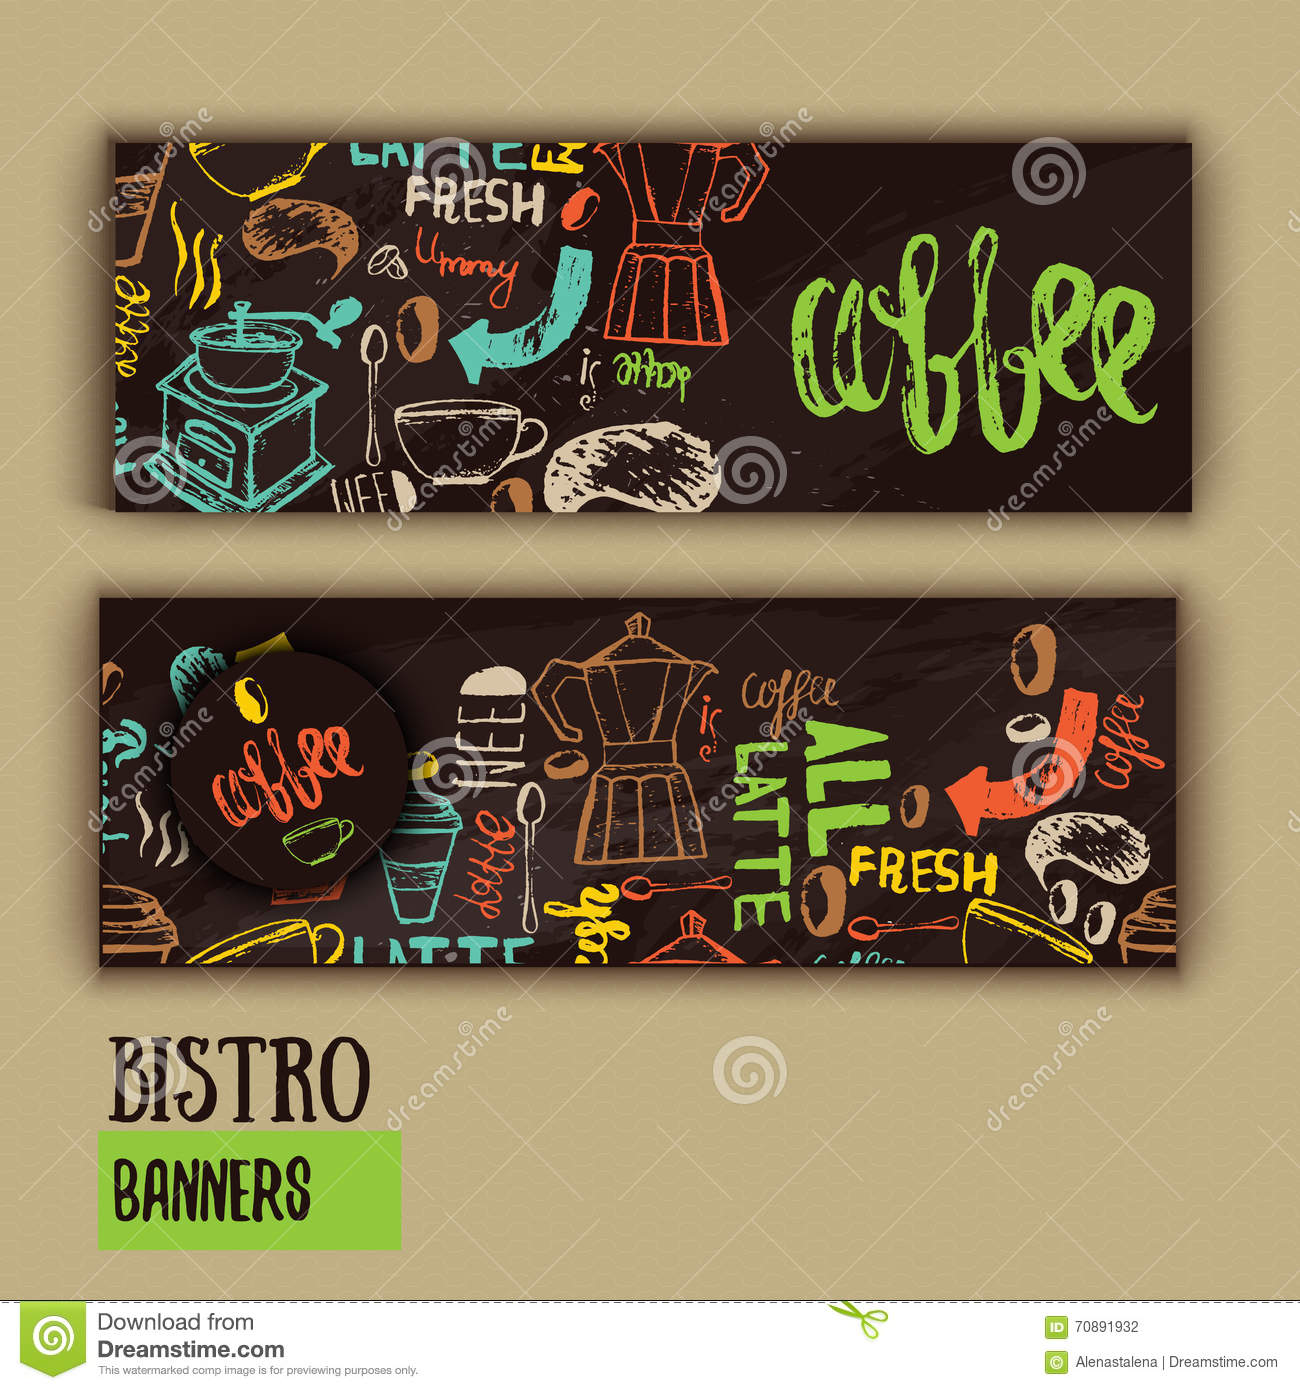 Cafe Banner Template Design With Lettering For Coffee Shop